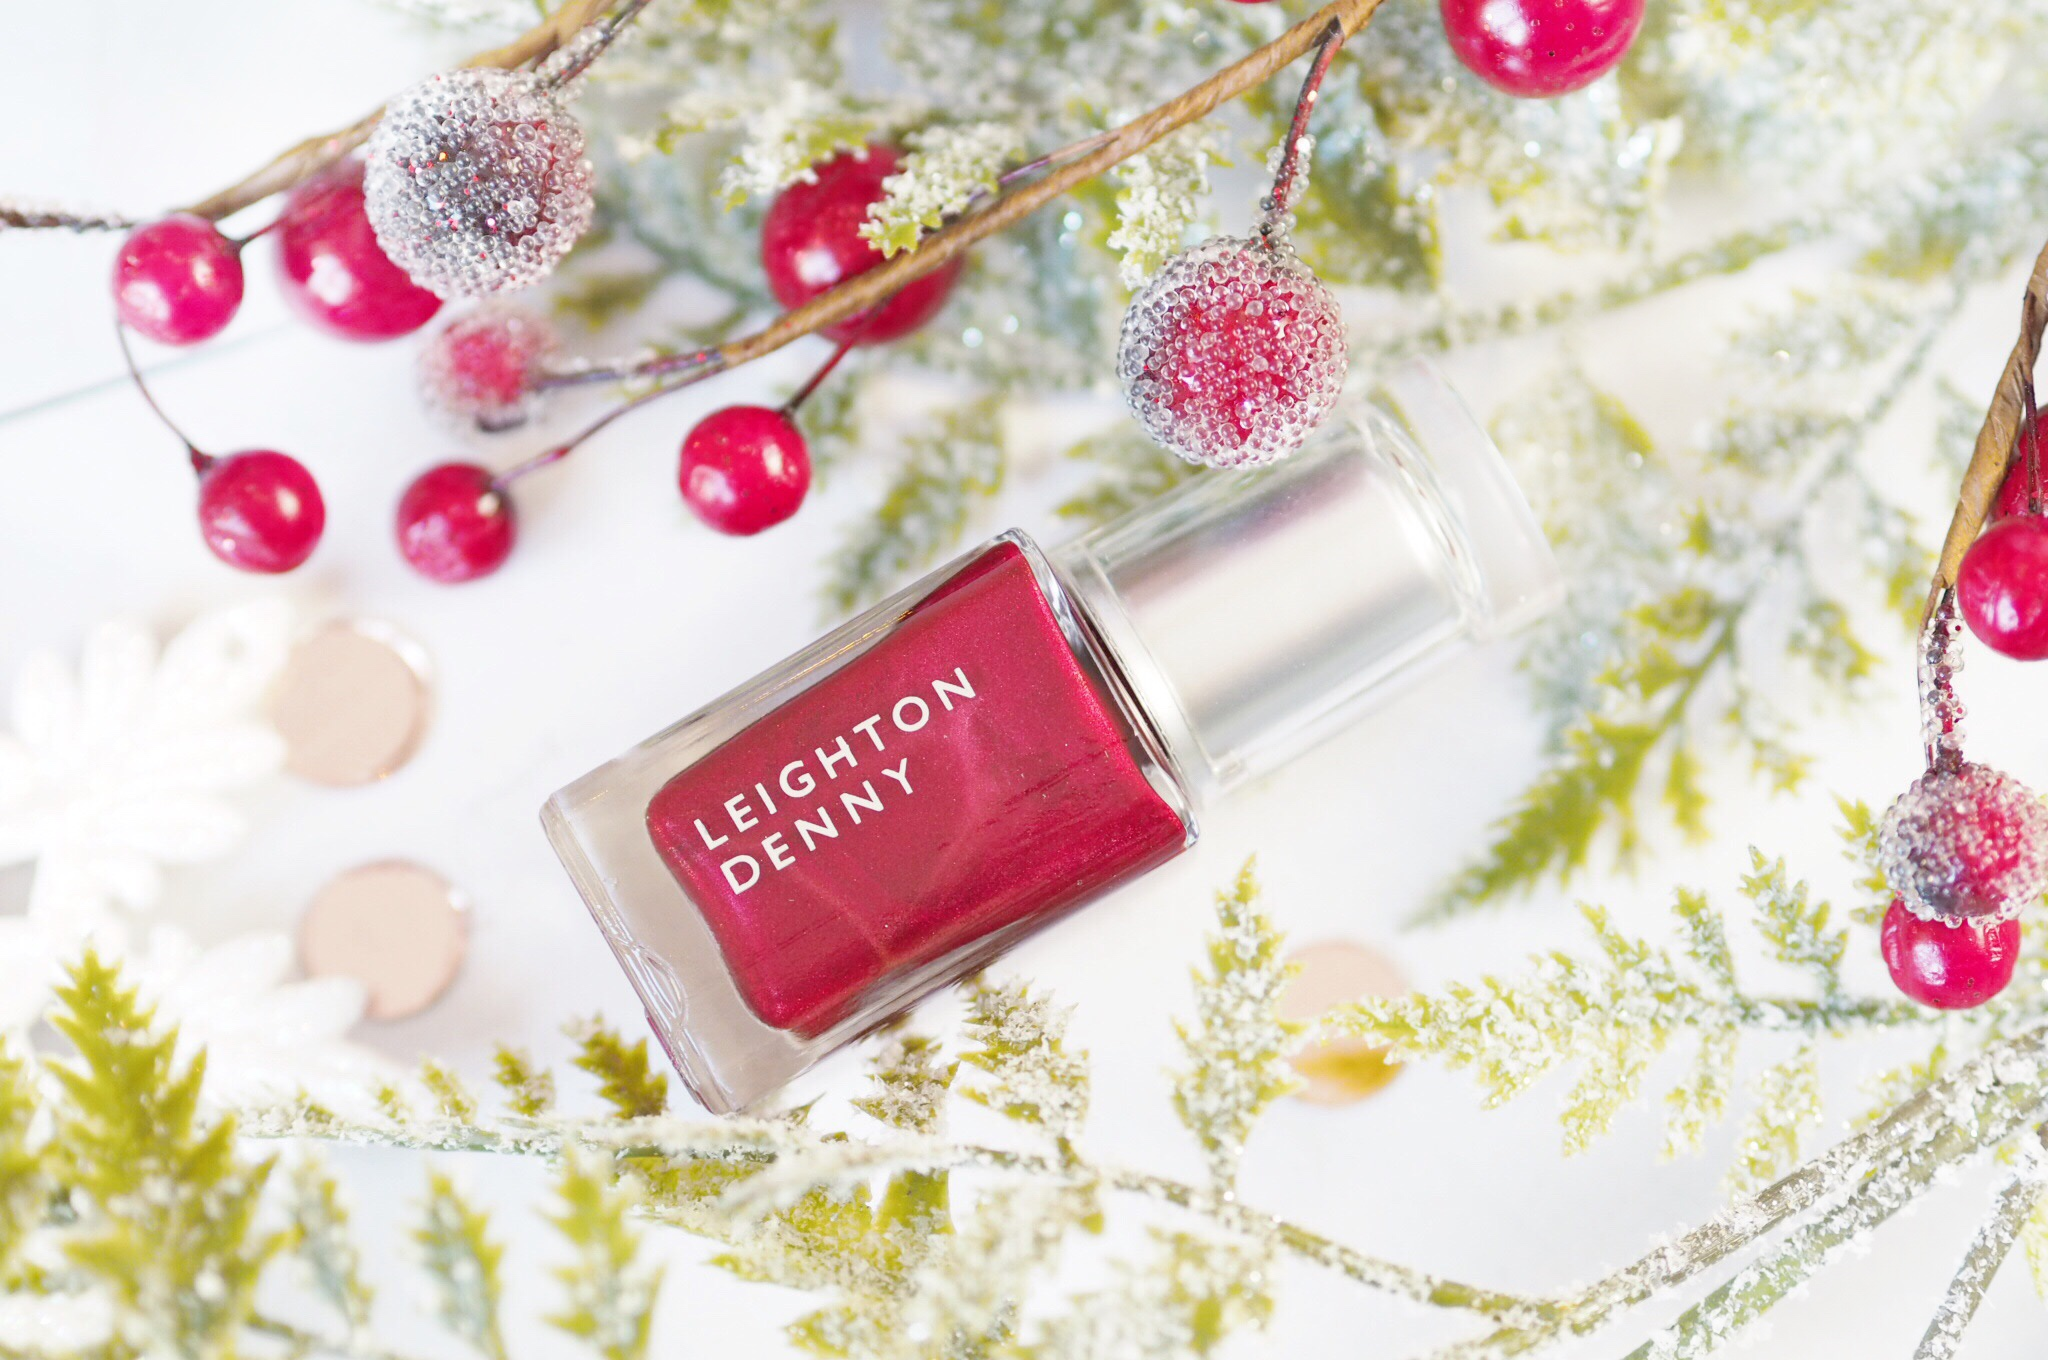 Leighton Denny nail polish - Marks and Spencer Advent Calendar